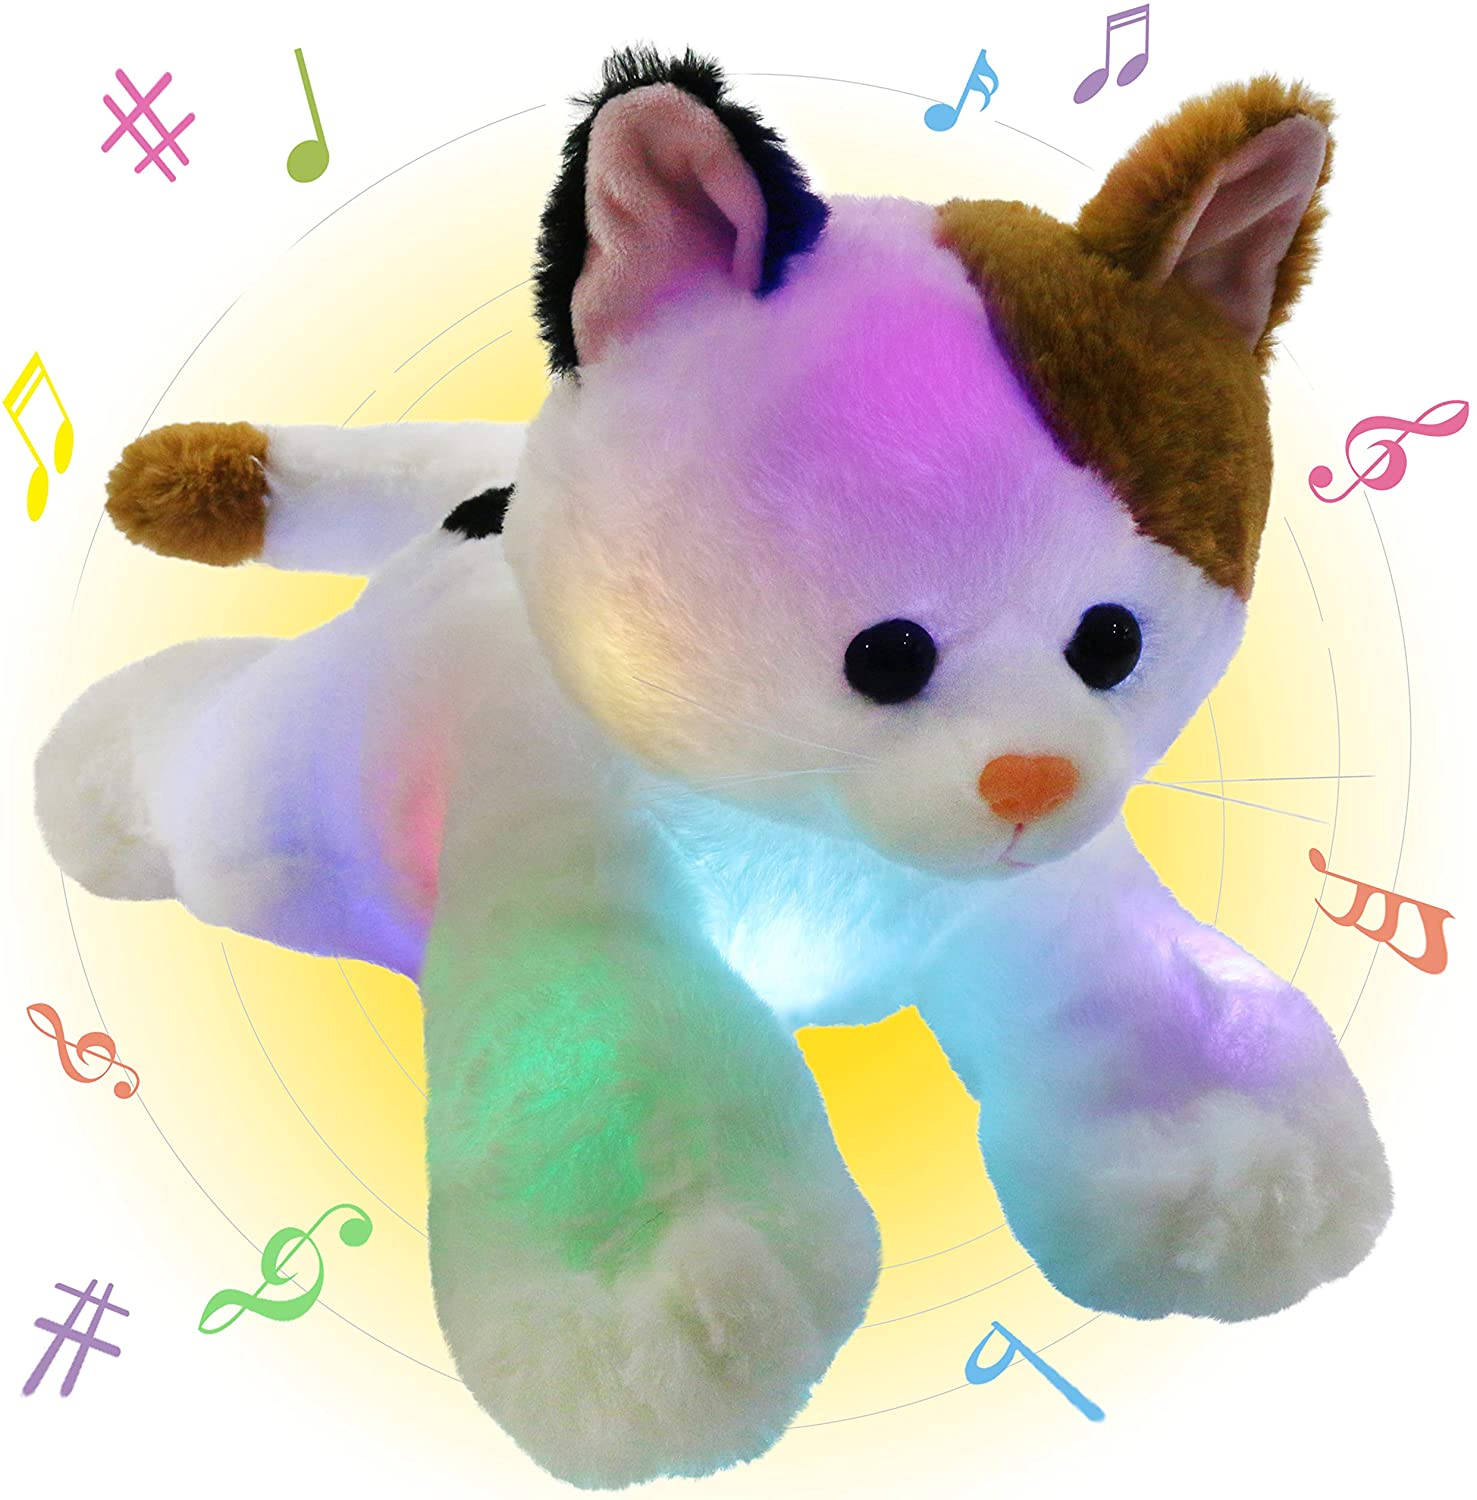 Glow Guards 15'' Musical Light up Stuffed Cat LED Singing Kitty Soft Pillow Plush with Night Lights Lullaby Birthday for Toddler Kids